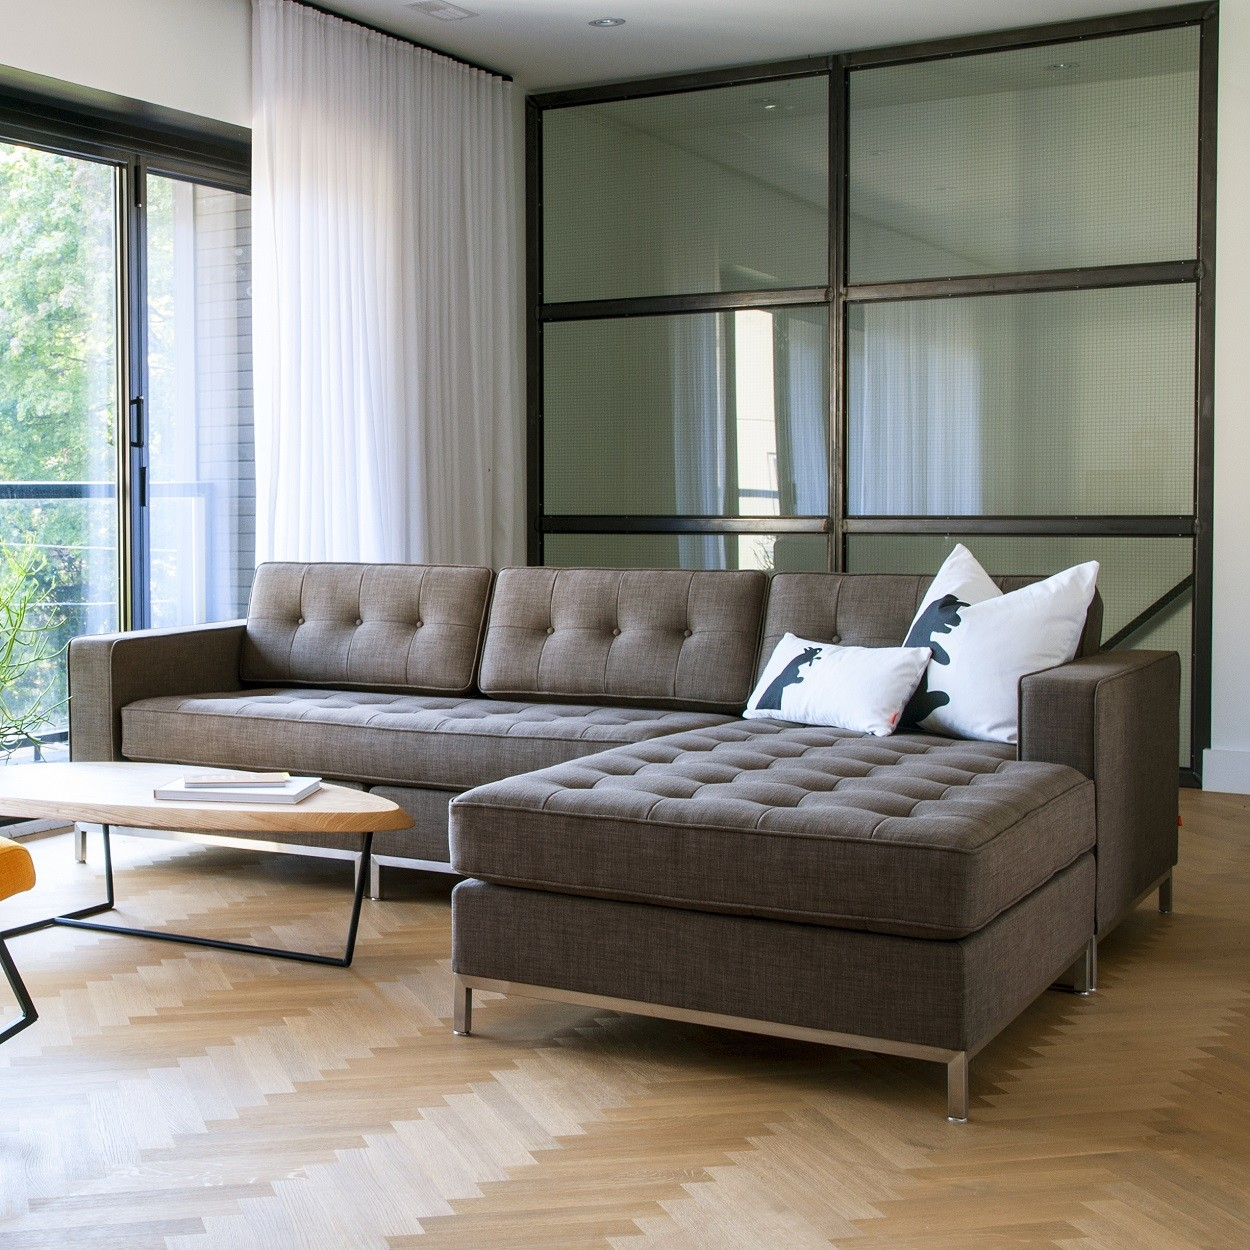 The Best Apartment Sectional Sofas Solving Function and Style Issues ...